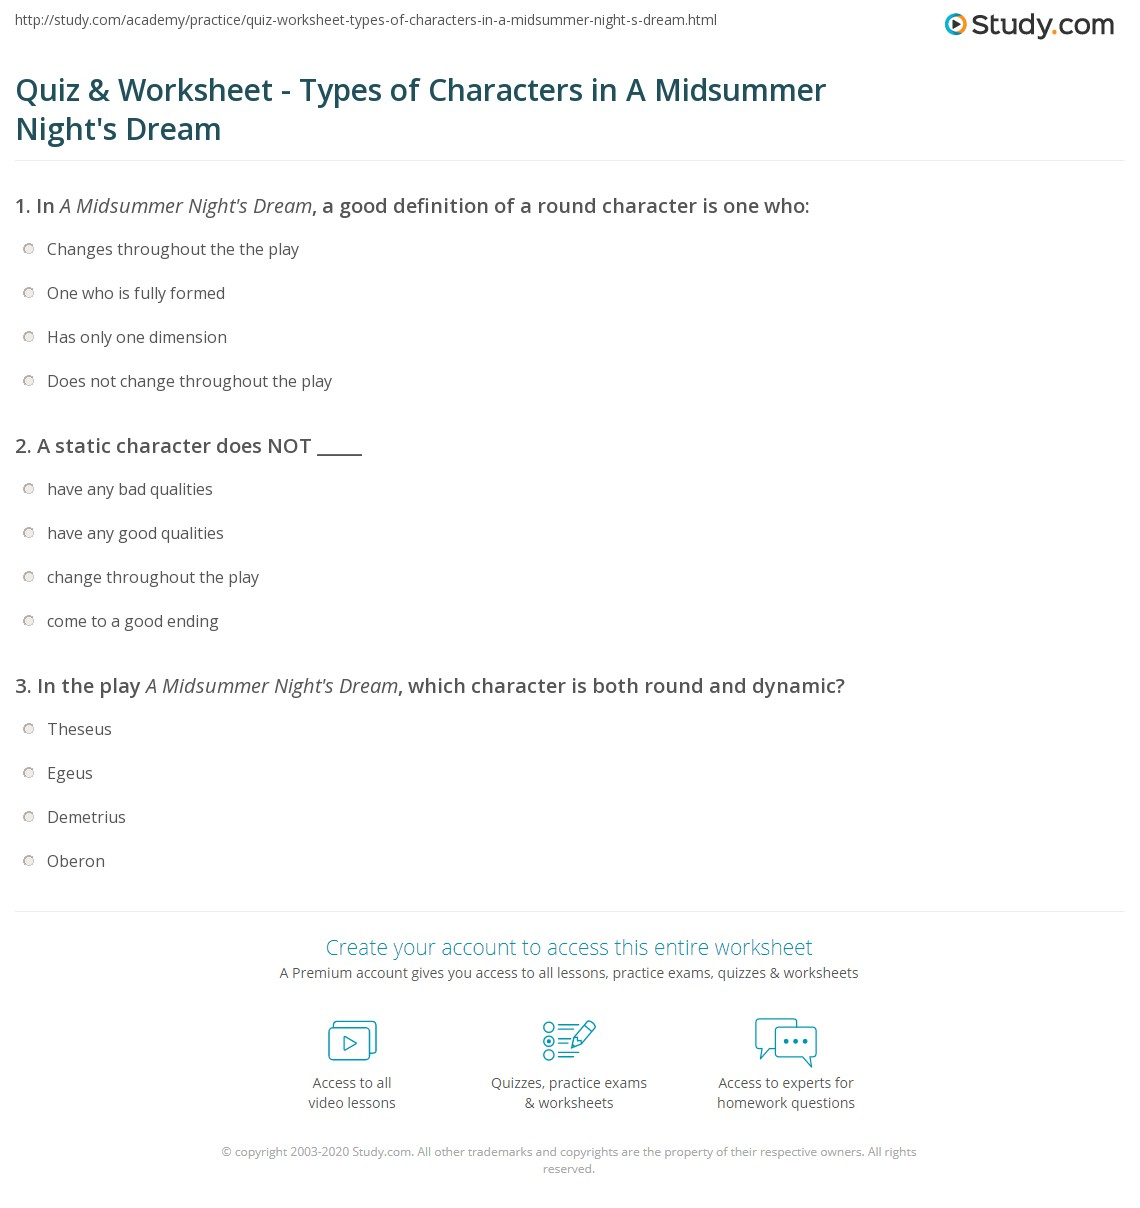 quiz worksheet types of characters in a midsummer night 39 s dream. Black Bedroom Furniture Sets. Home Design Ideas